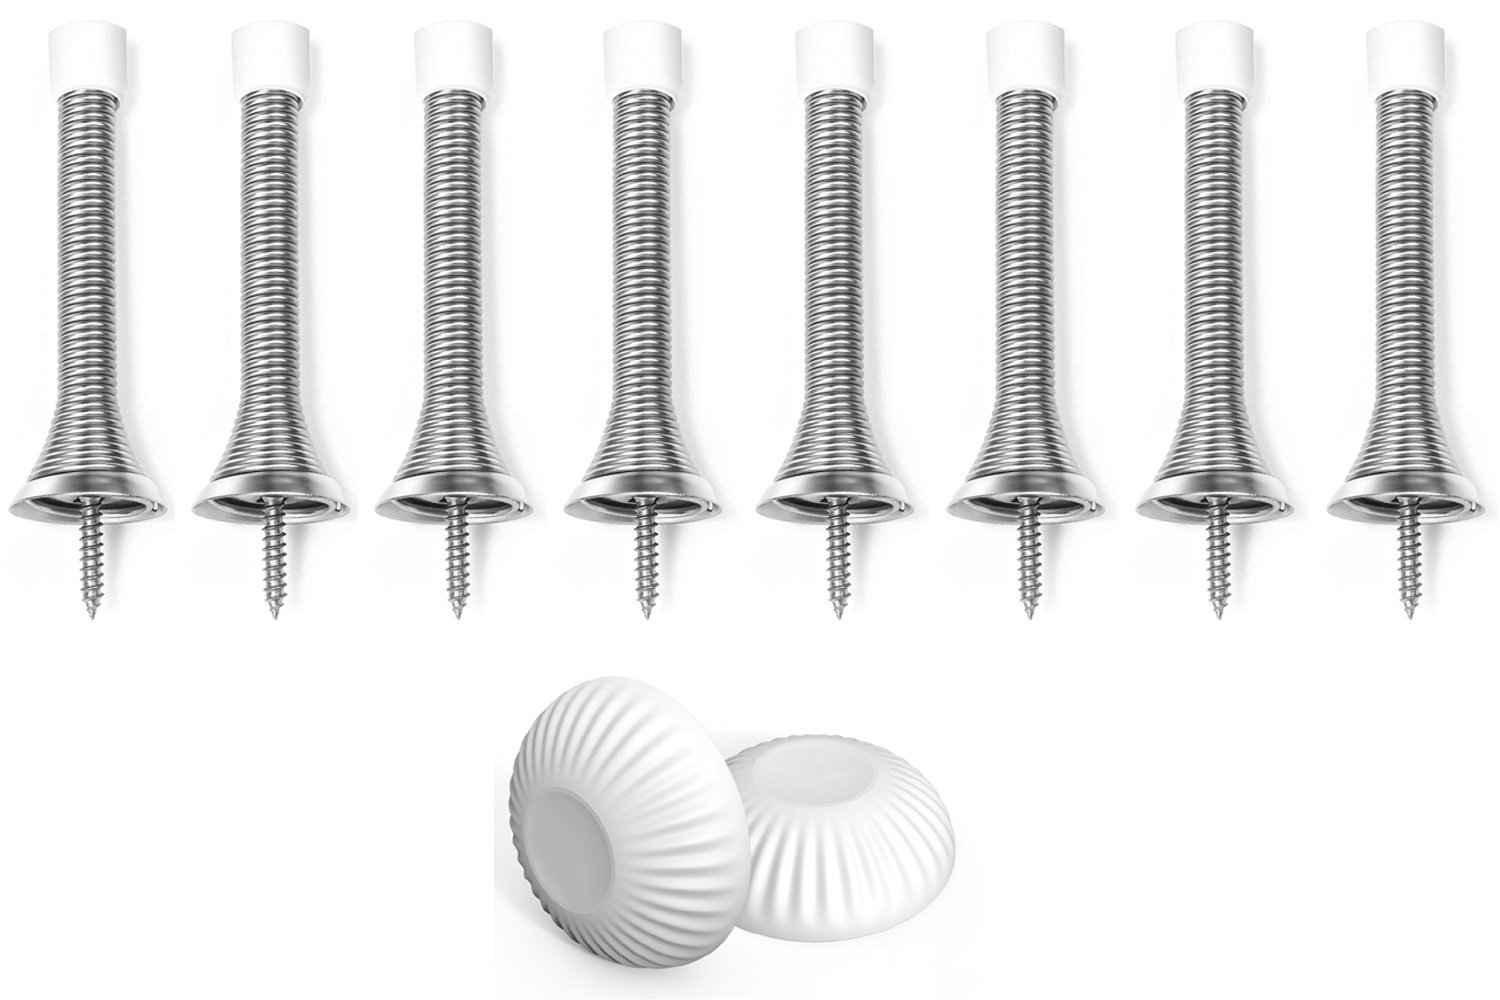 Spring Door Stops, LVGIN Wall Door Stopper with White Rubber Door Bumper 10 Pcs Perfect for Commercial, Office, Home use